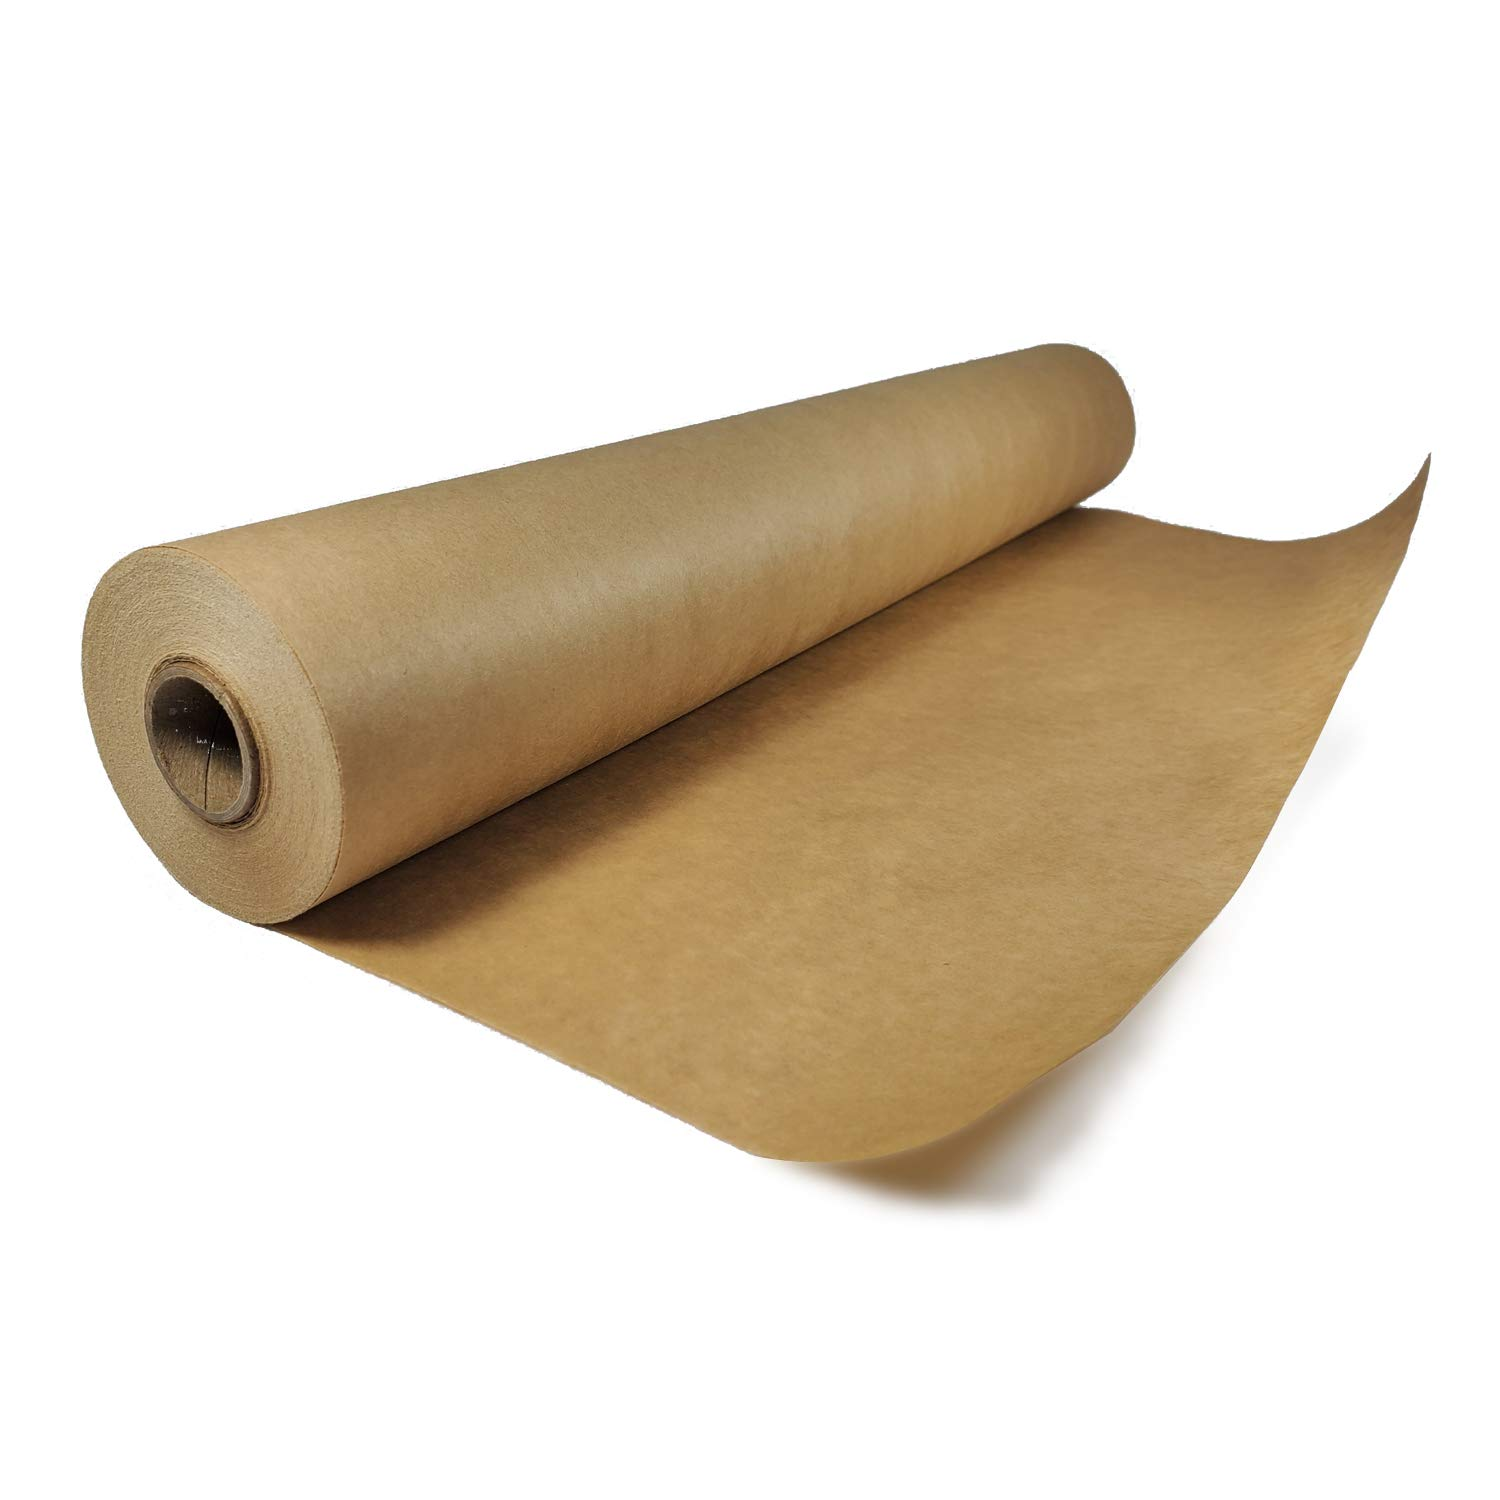 Kraft Paint Paper to Protect Surfaces from Water-Based Materials Painter/'s Paper Roll for Home Improvements IDL Packaging Premium 18 x 60-Yard Brown Masking Paper Roll to Cover Area